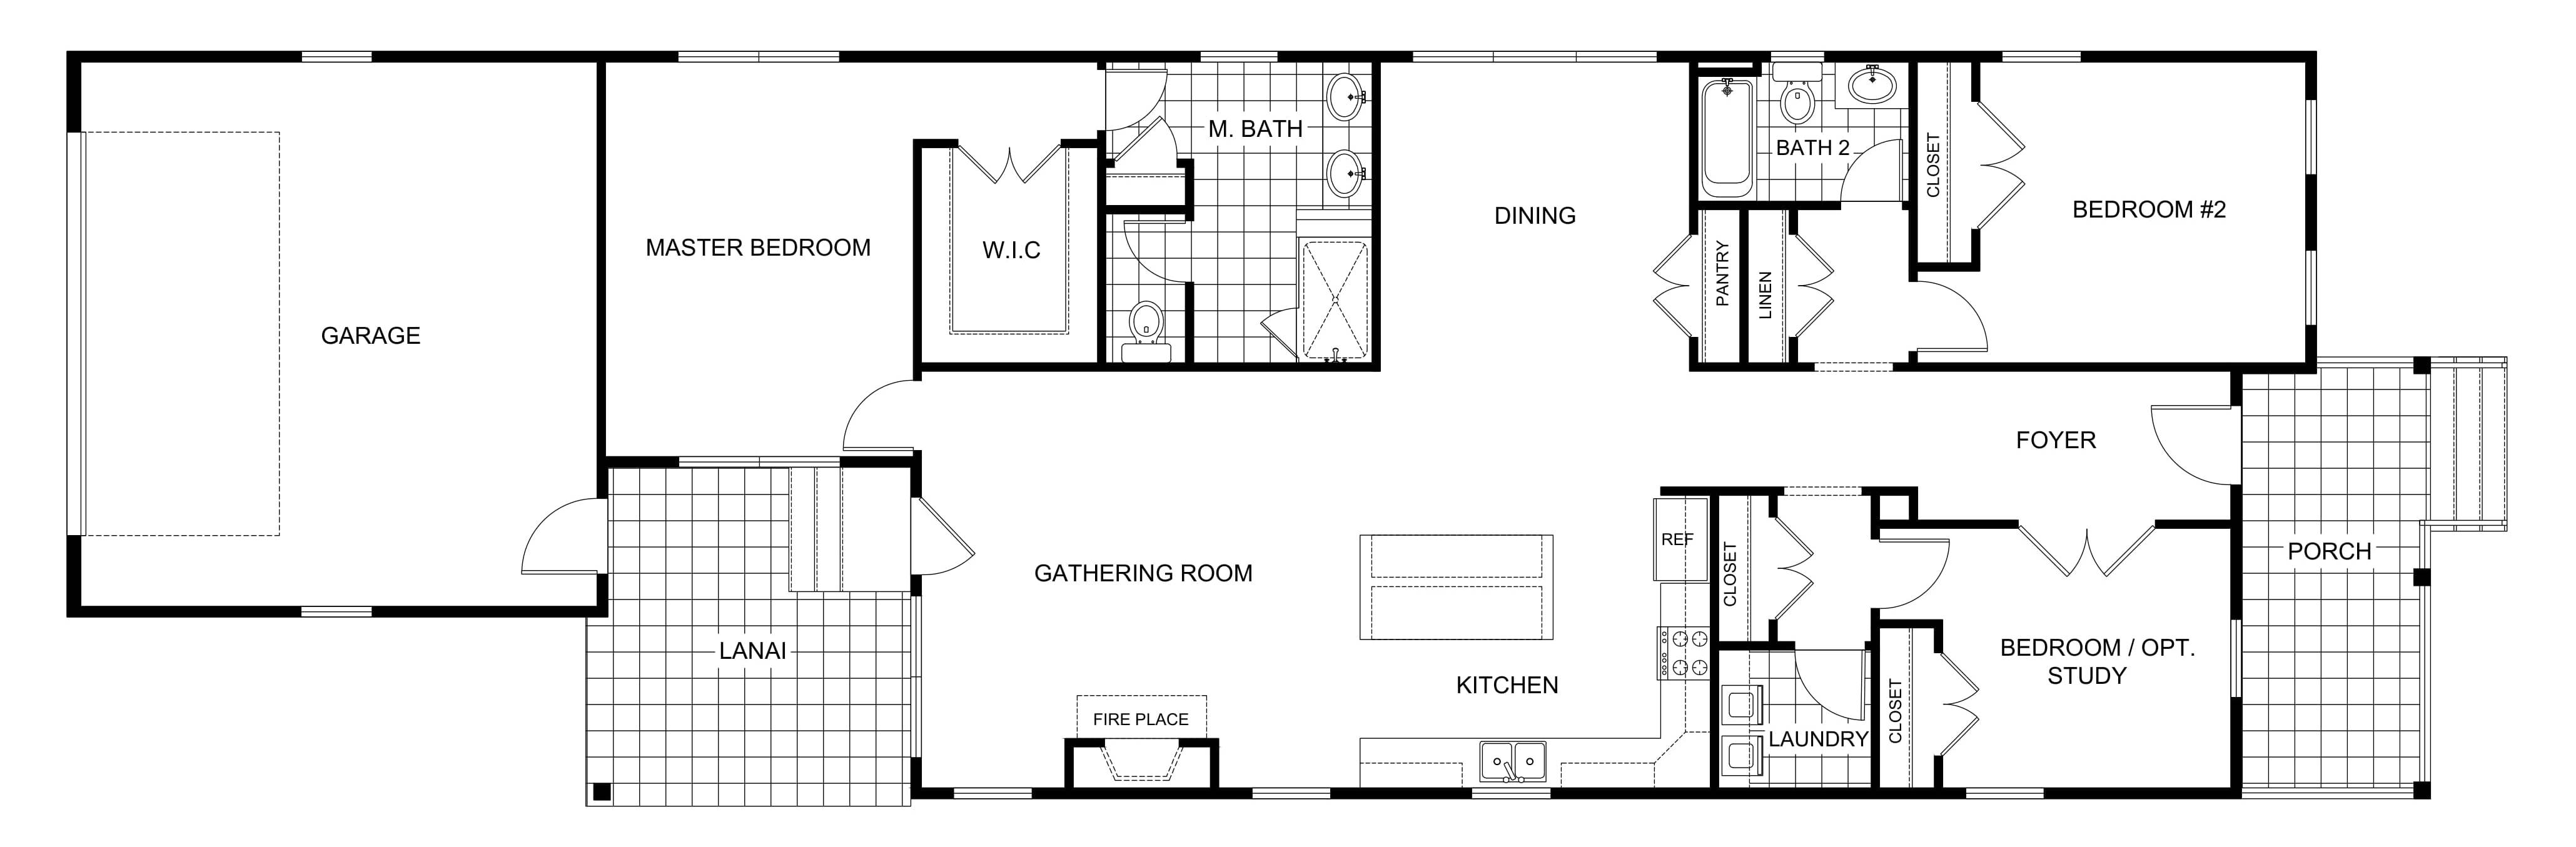 Convert Floor Plan to 2D